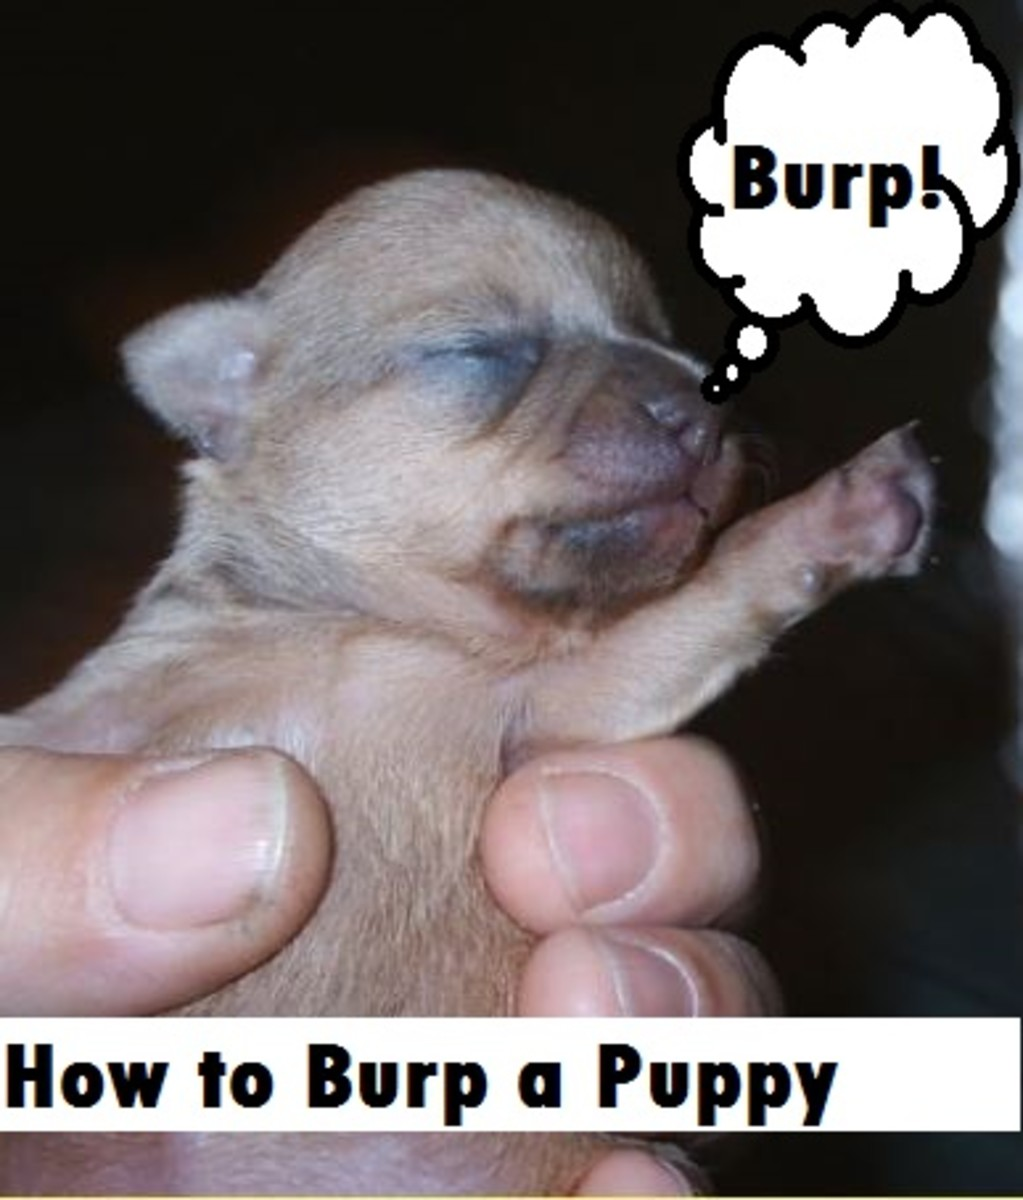 how to burp a puppy